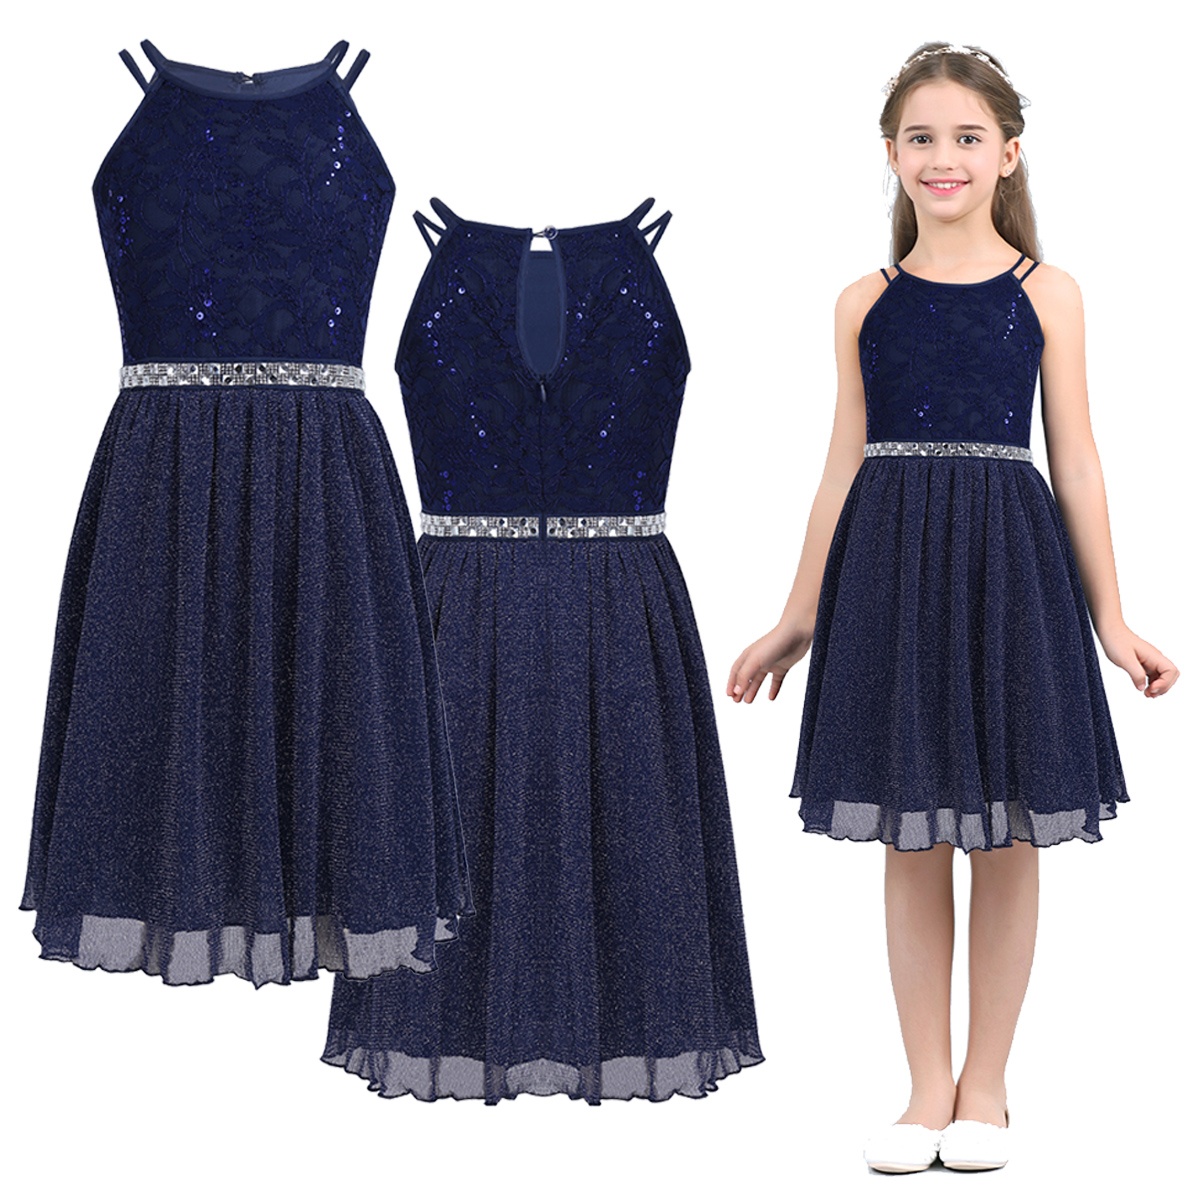 Summer Girls Lace Dress Children's Clothing Party Princess Baby Kids Girls Clothes Wedding Shiny Dresses Teen Costume 6 14 Years